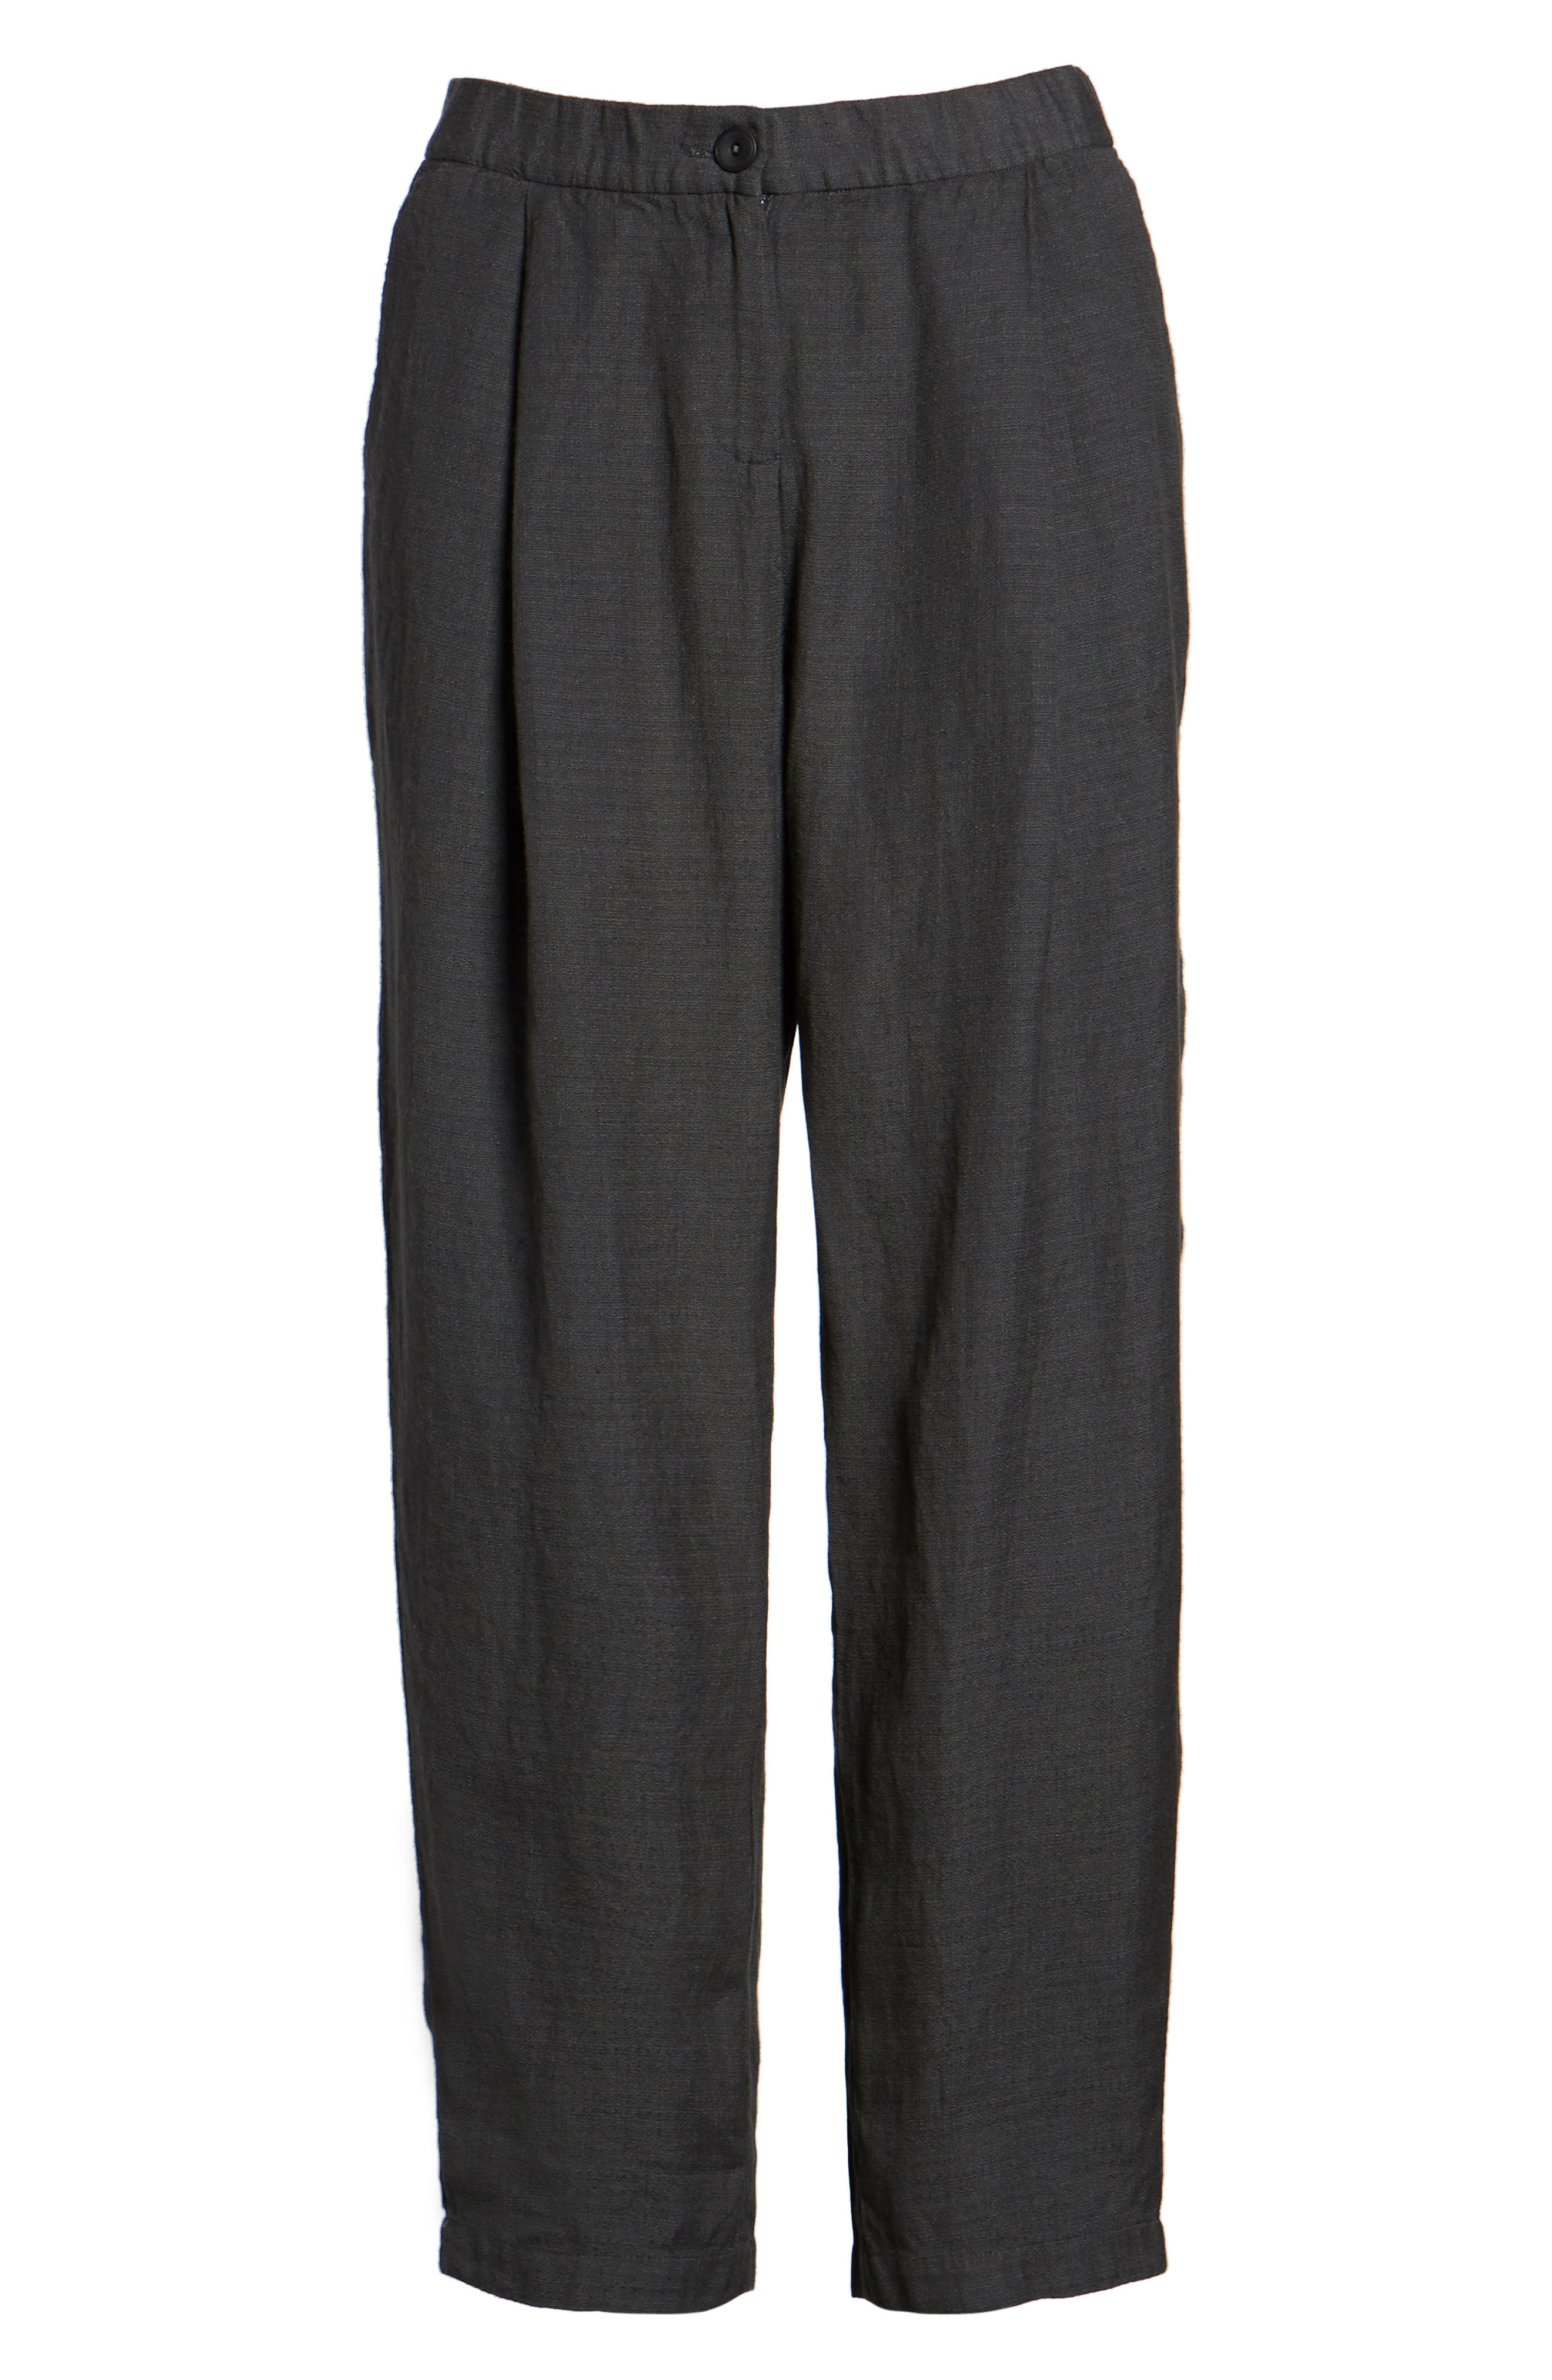 Pleated Linen Blend Ankle Trousers,                             Alternate thumbnail 7, color,                             Graphite